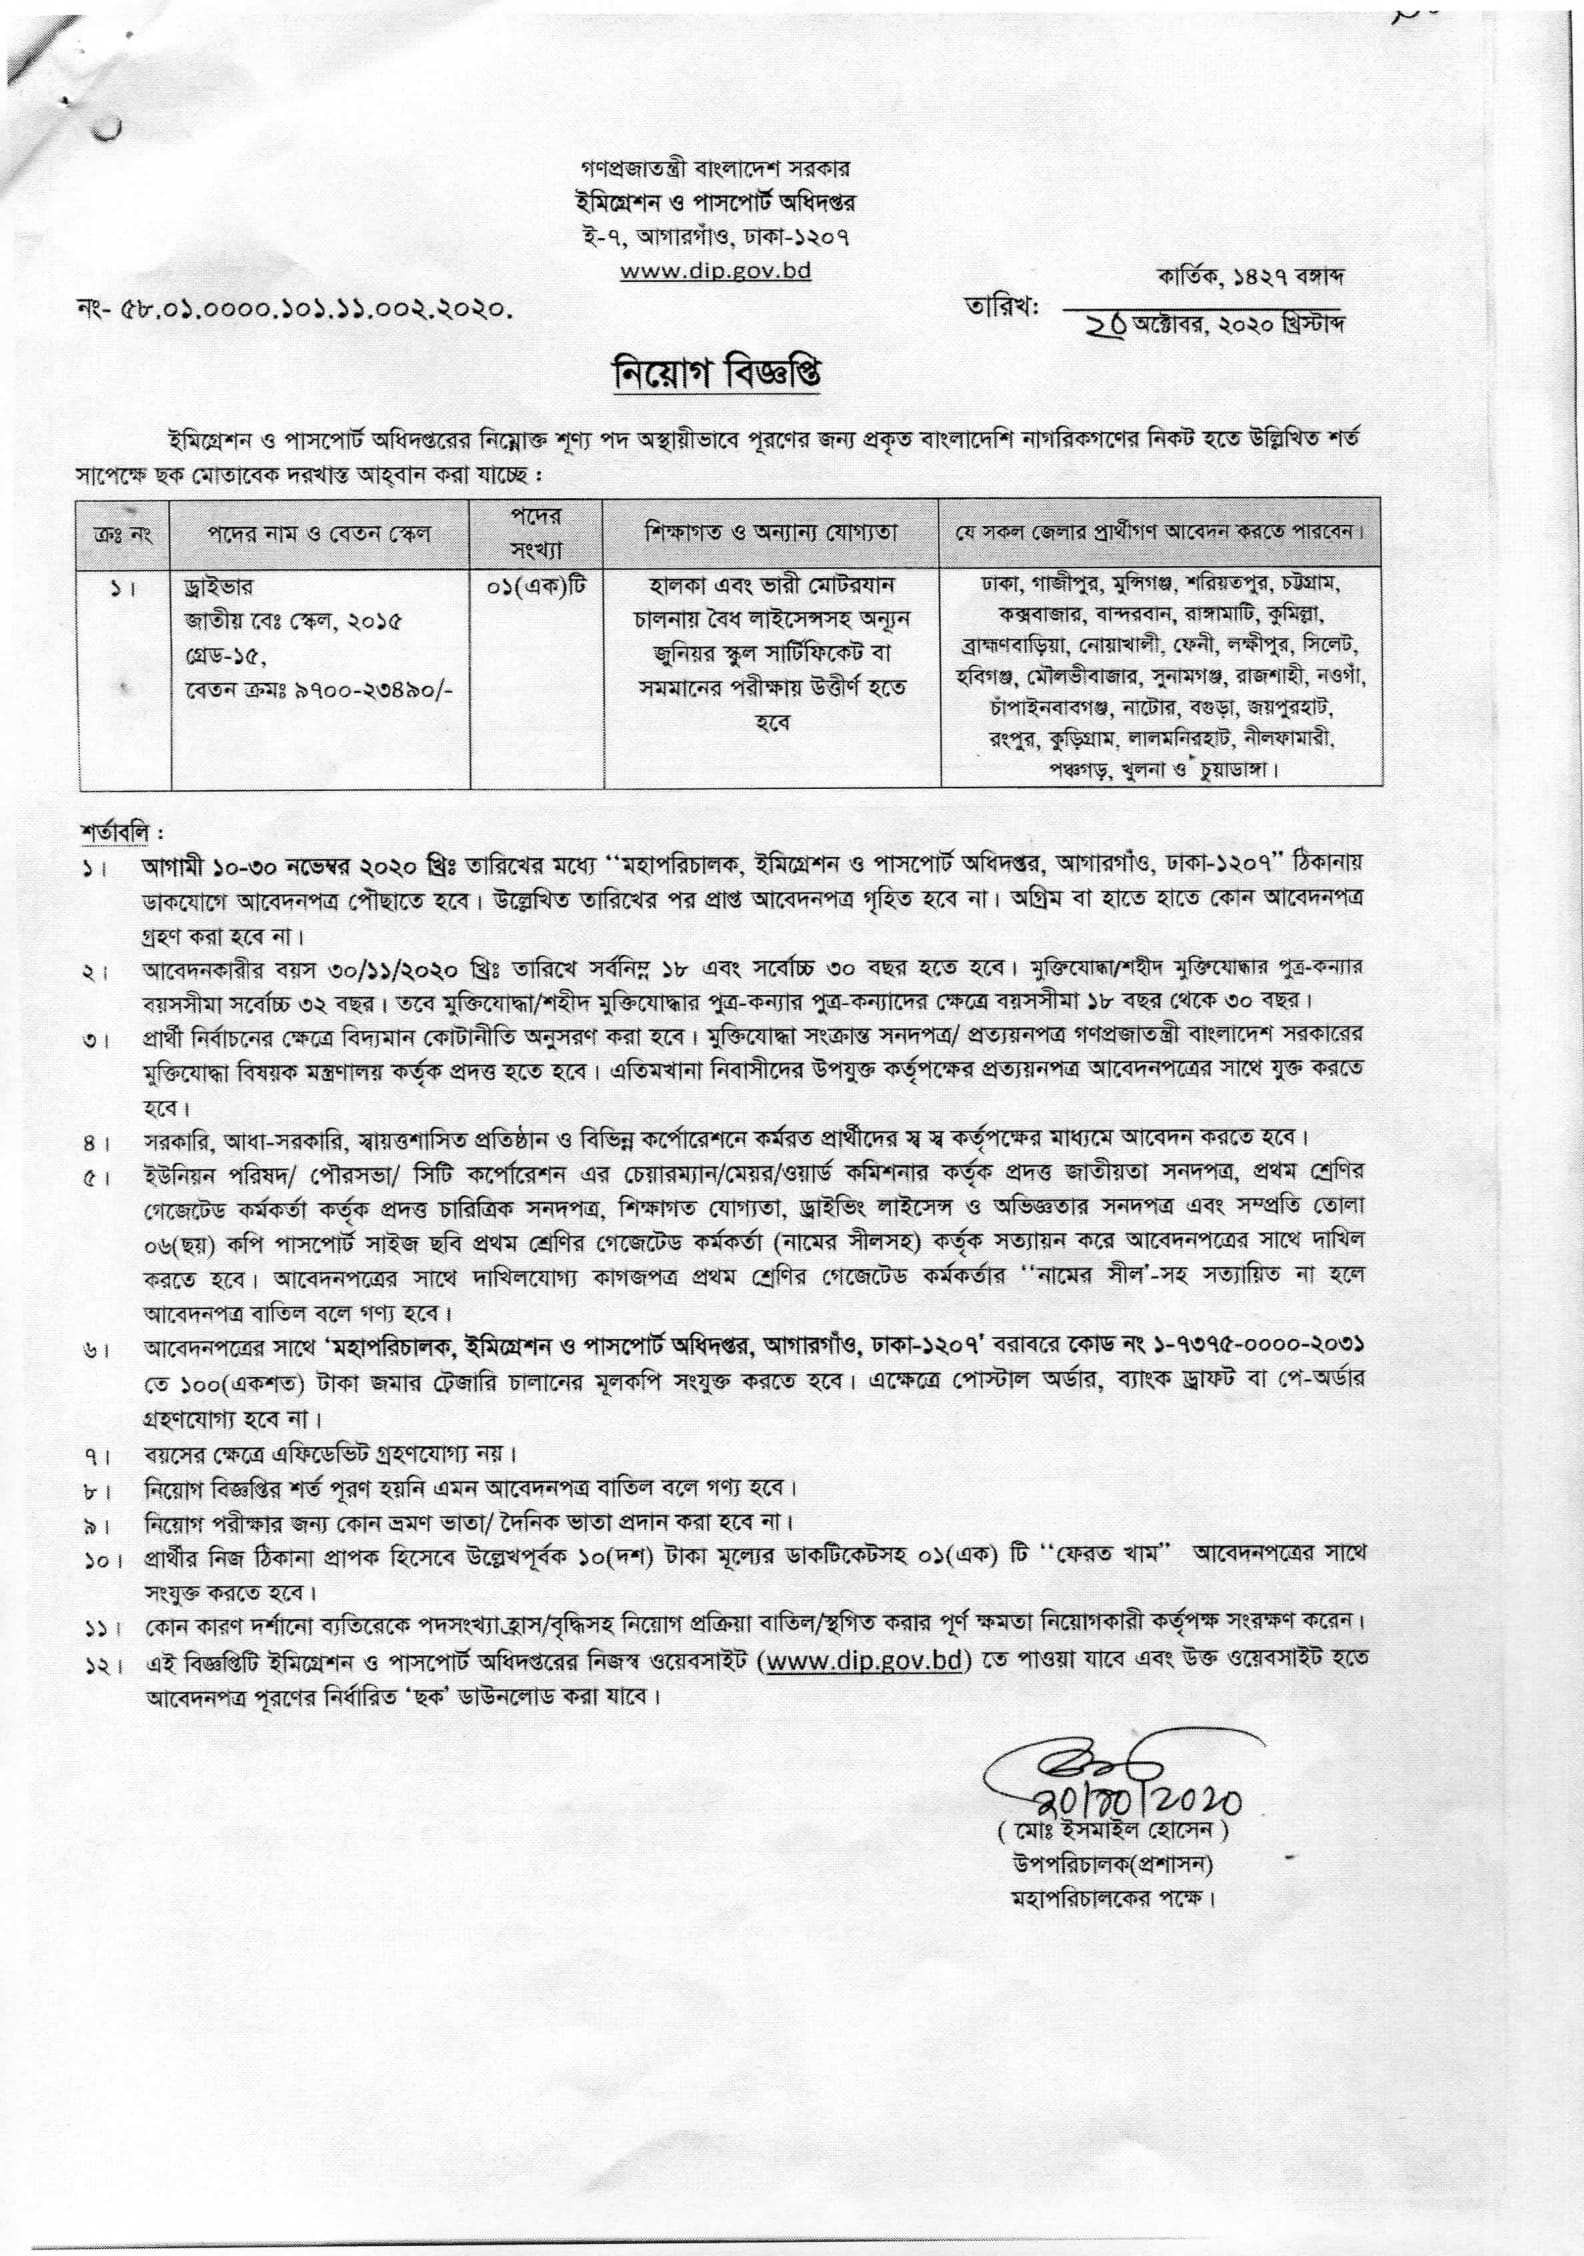 Department-of-Immigration-and-Passports-Job-Circular-2020-PDF-1